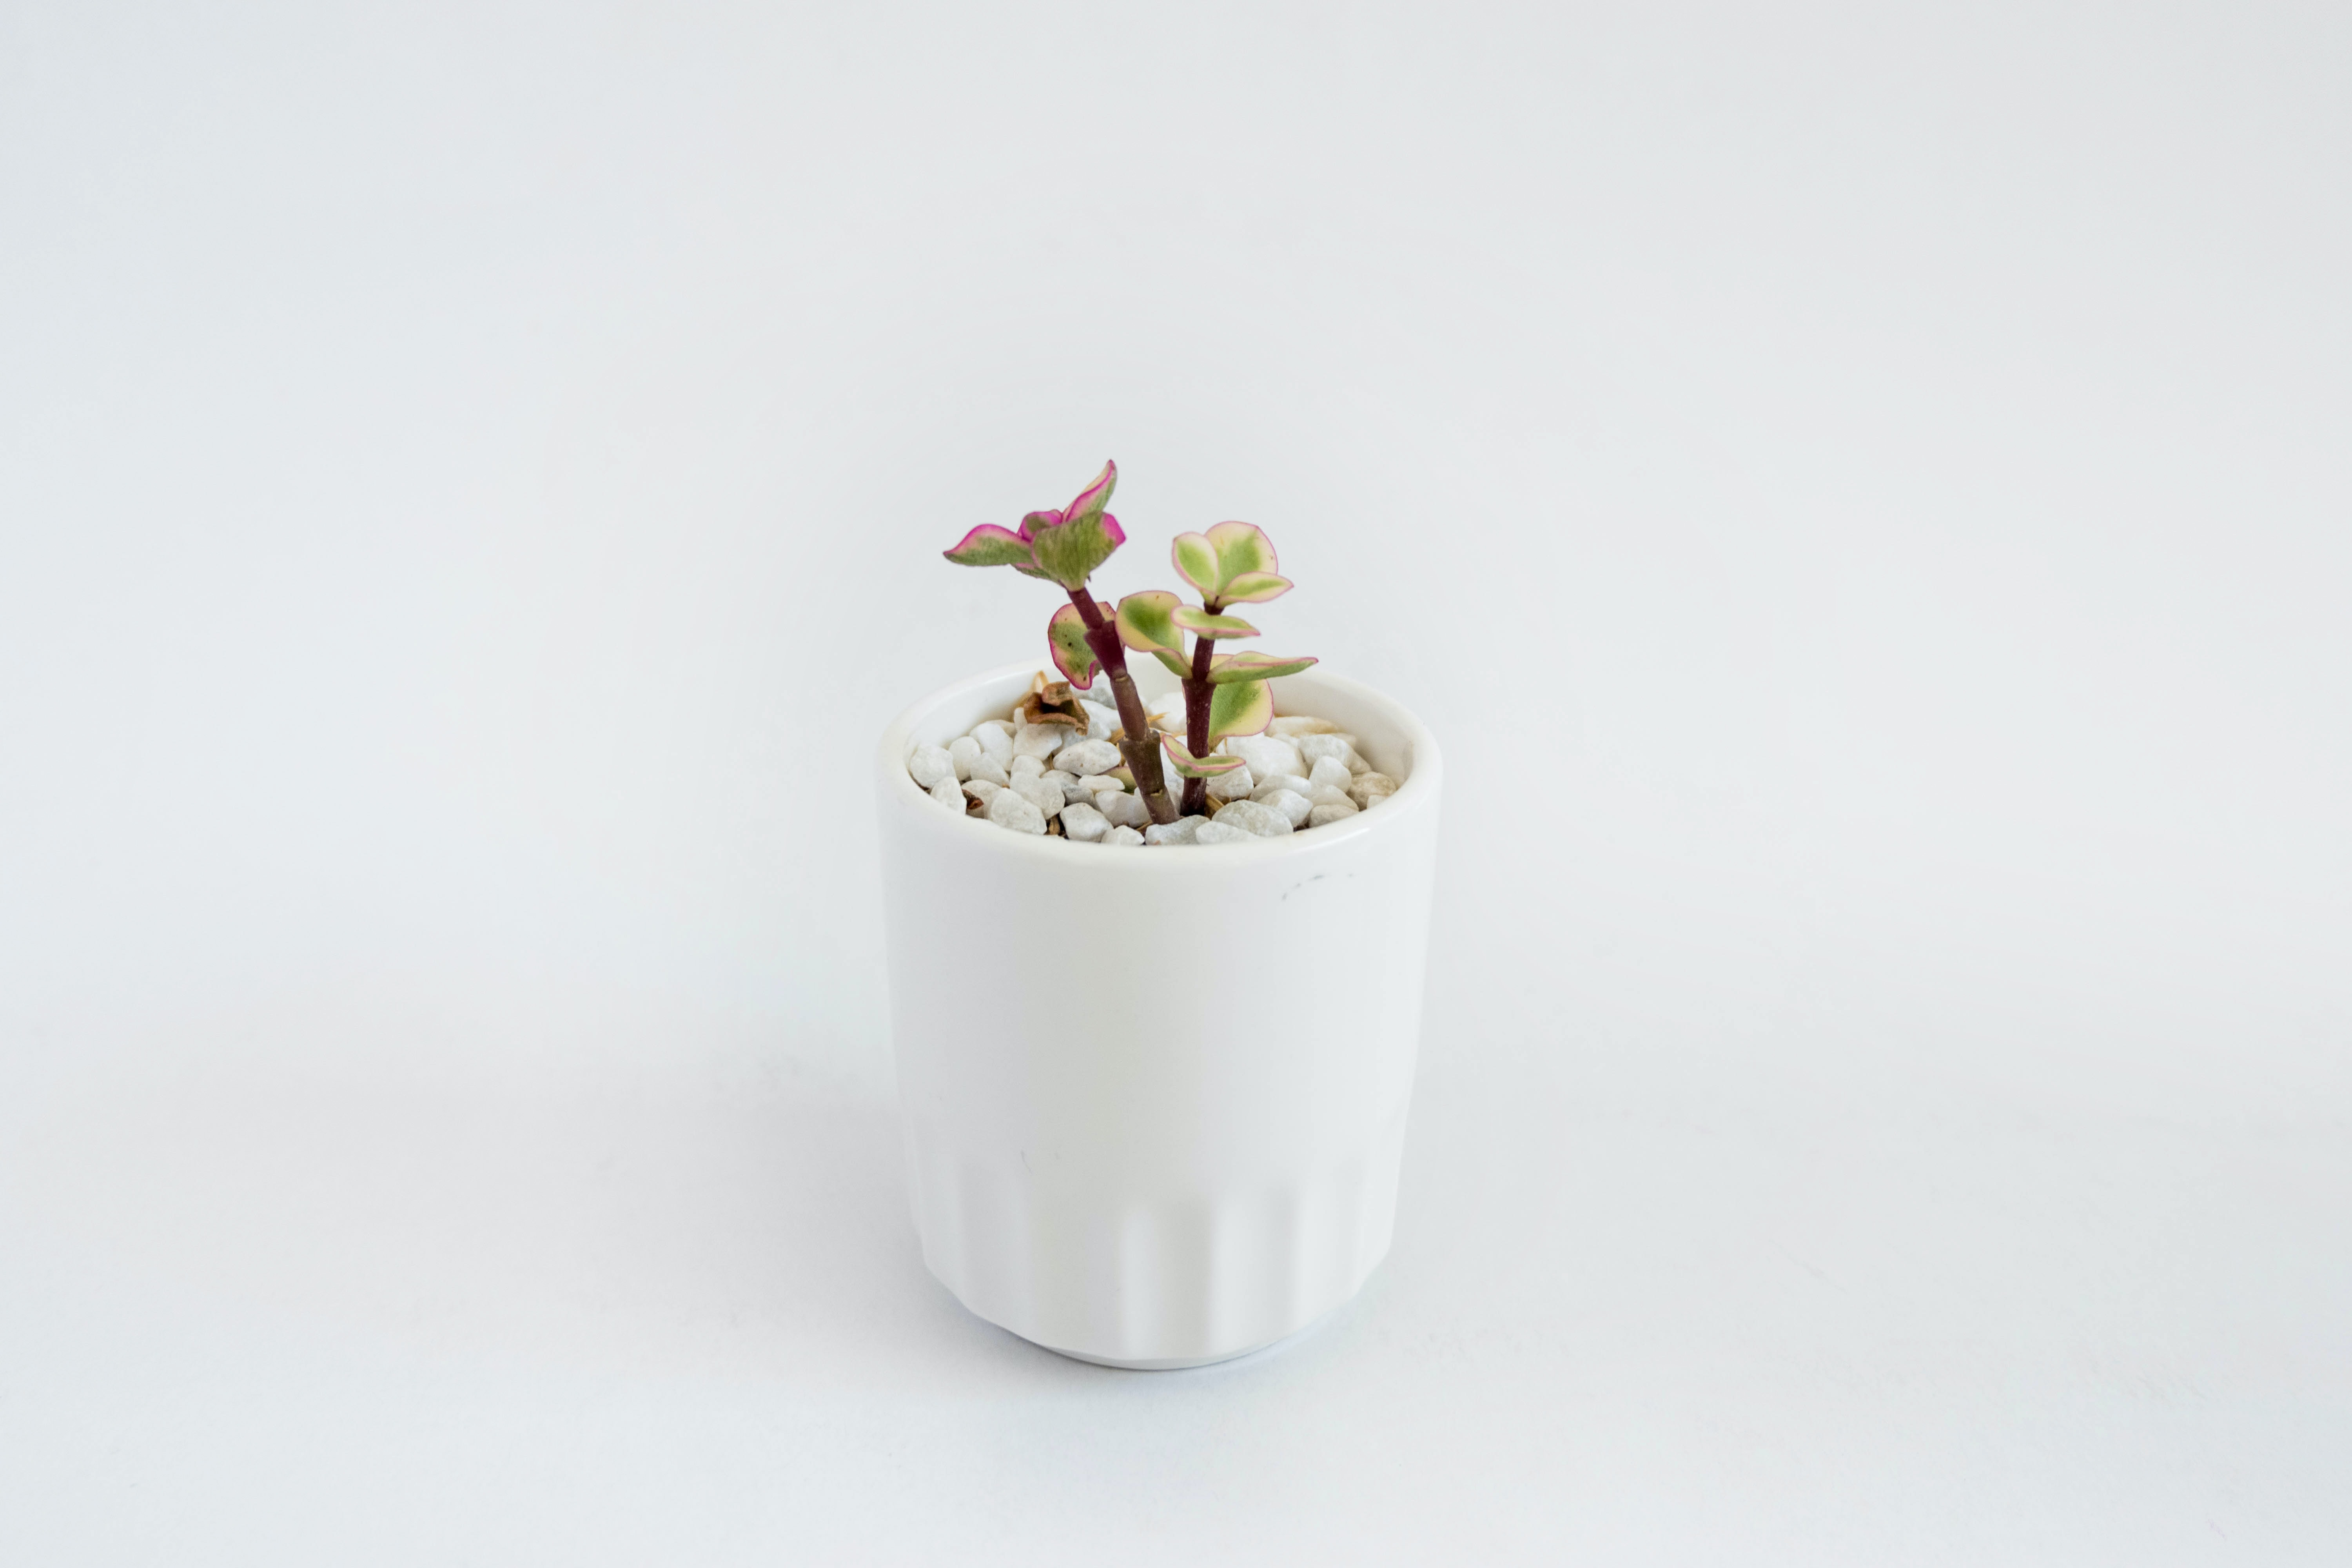 Small succulent plant in a white pot on a bight white background